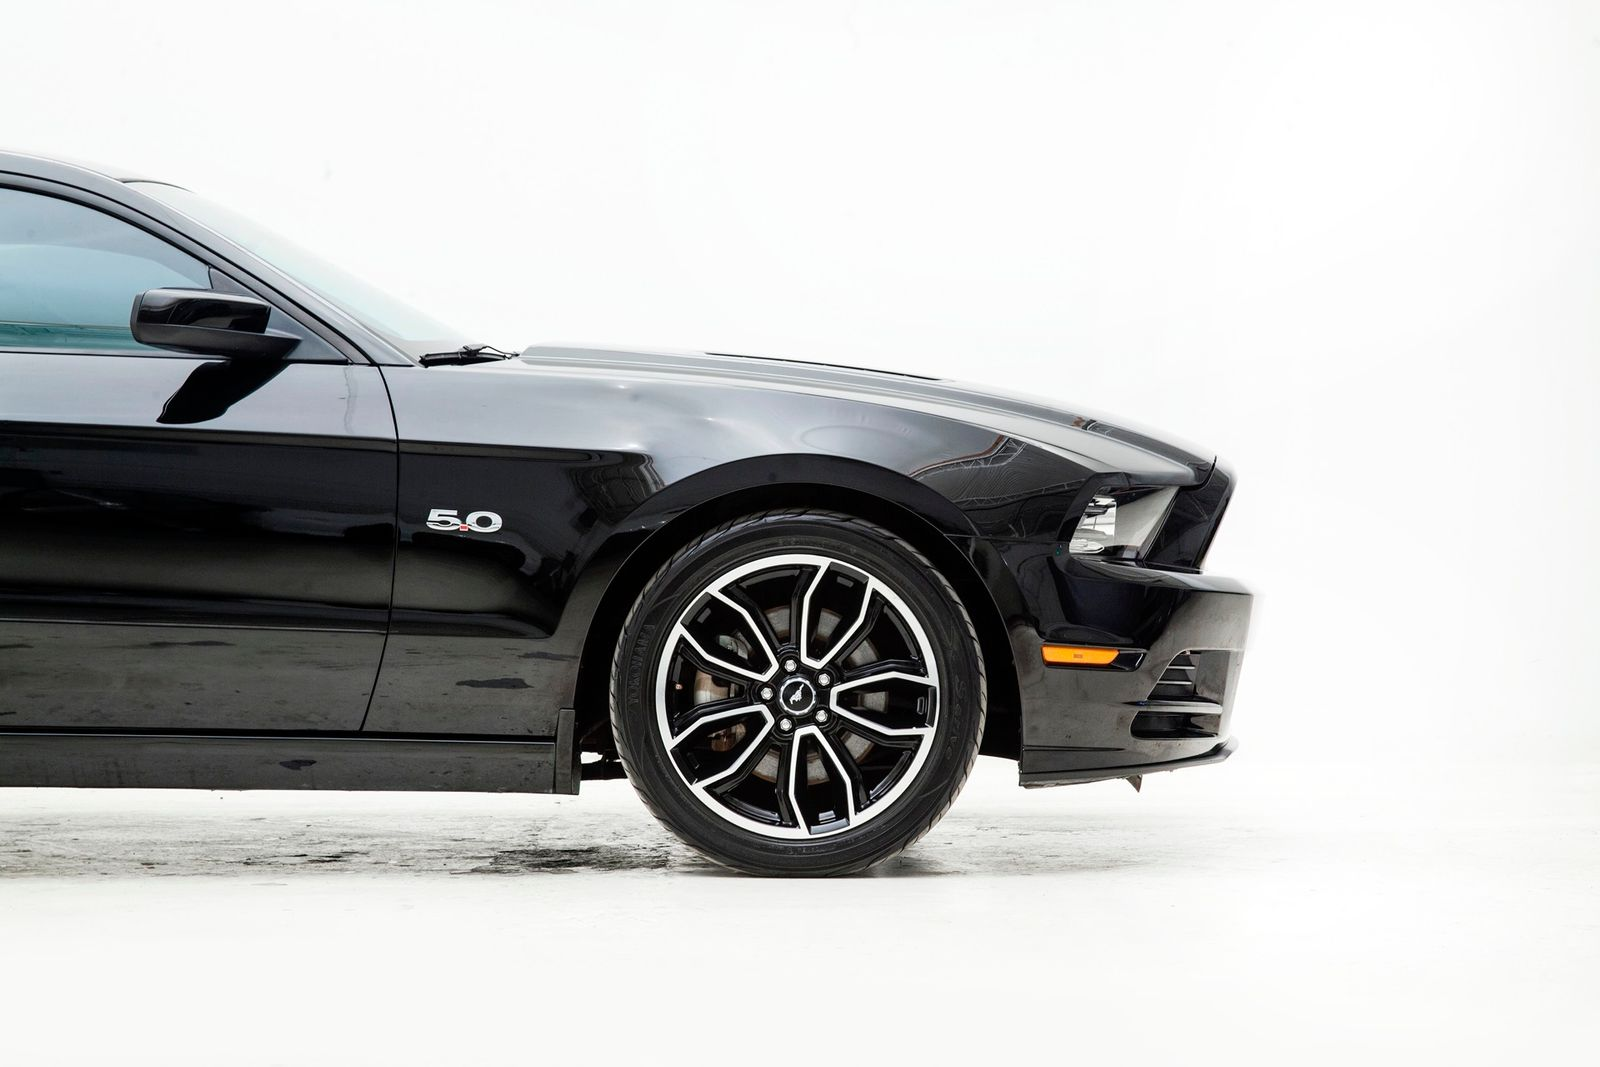 Used 2013 Black Ford Mustang  GT Premium Photo 8